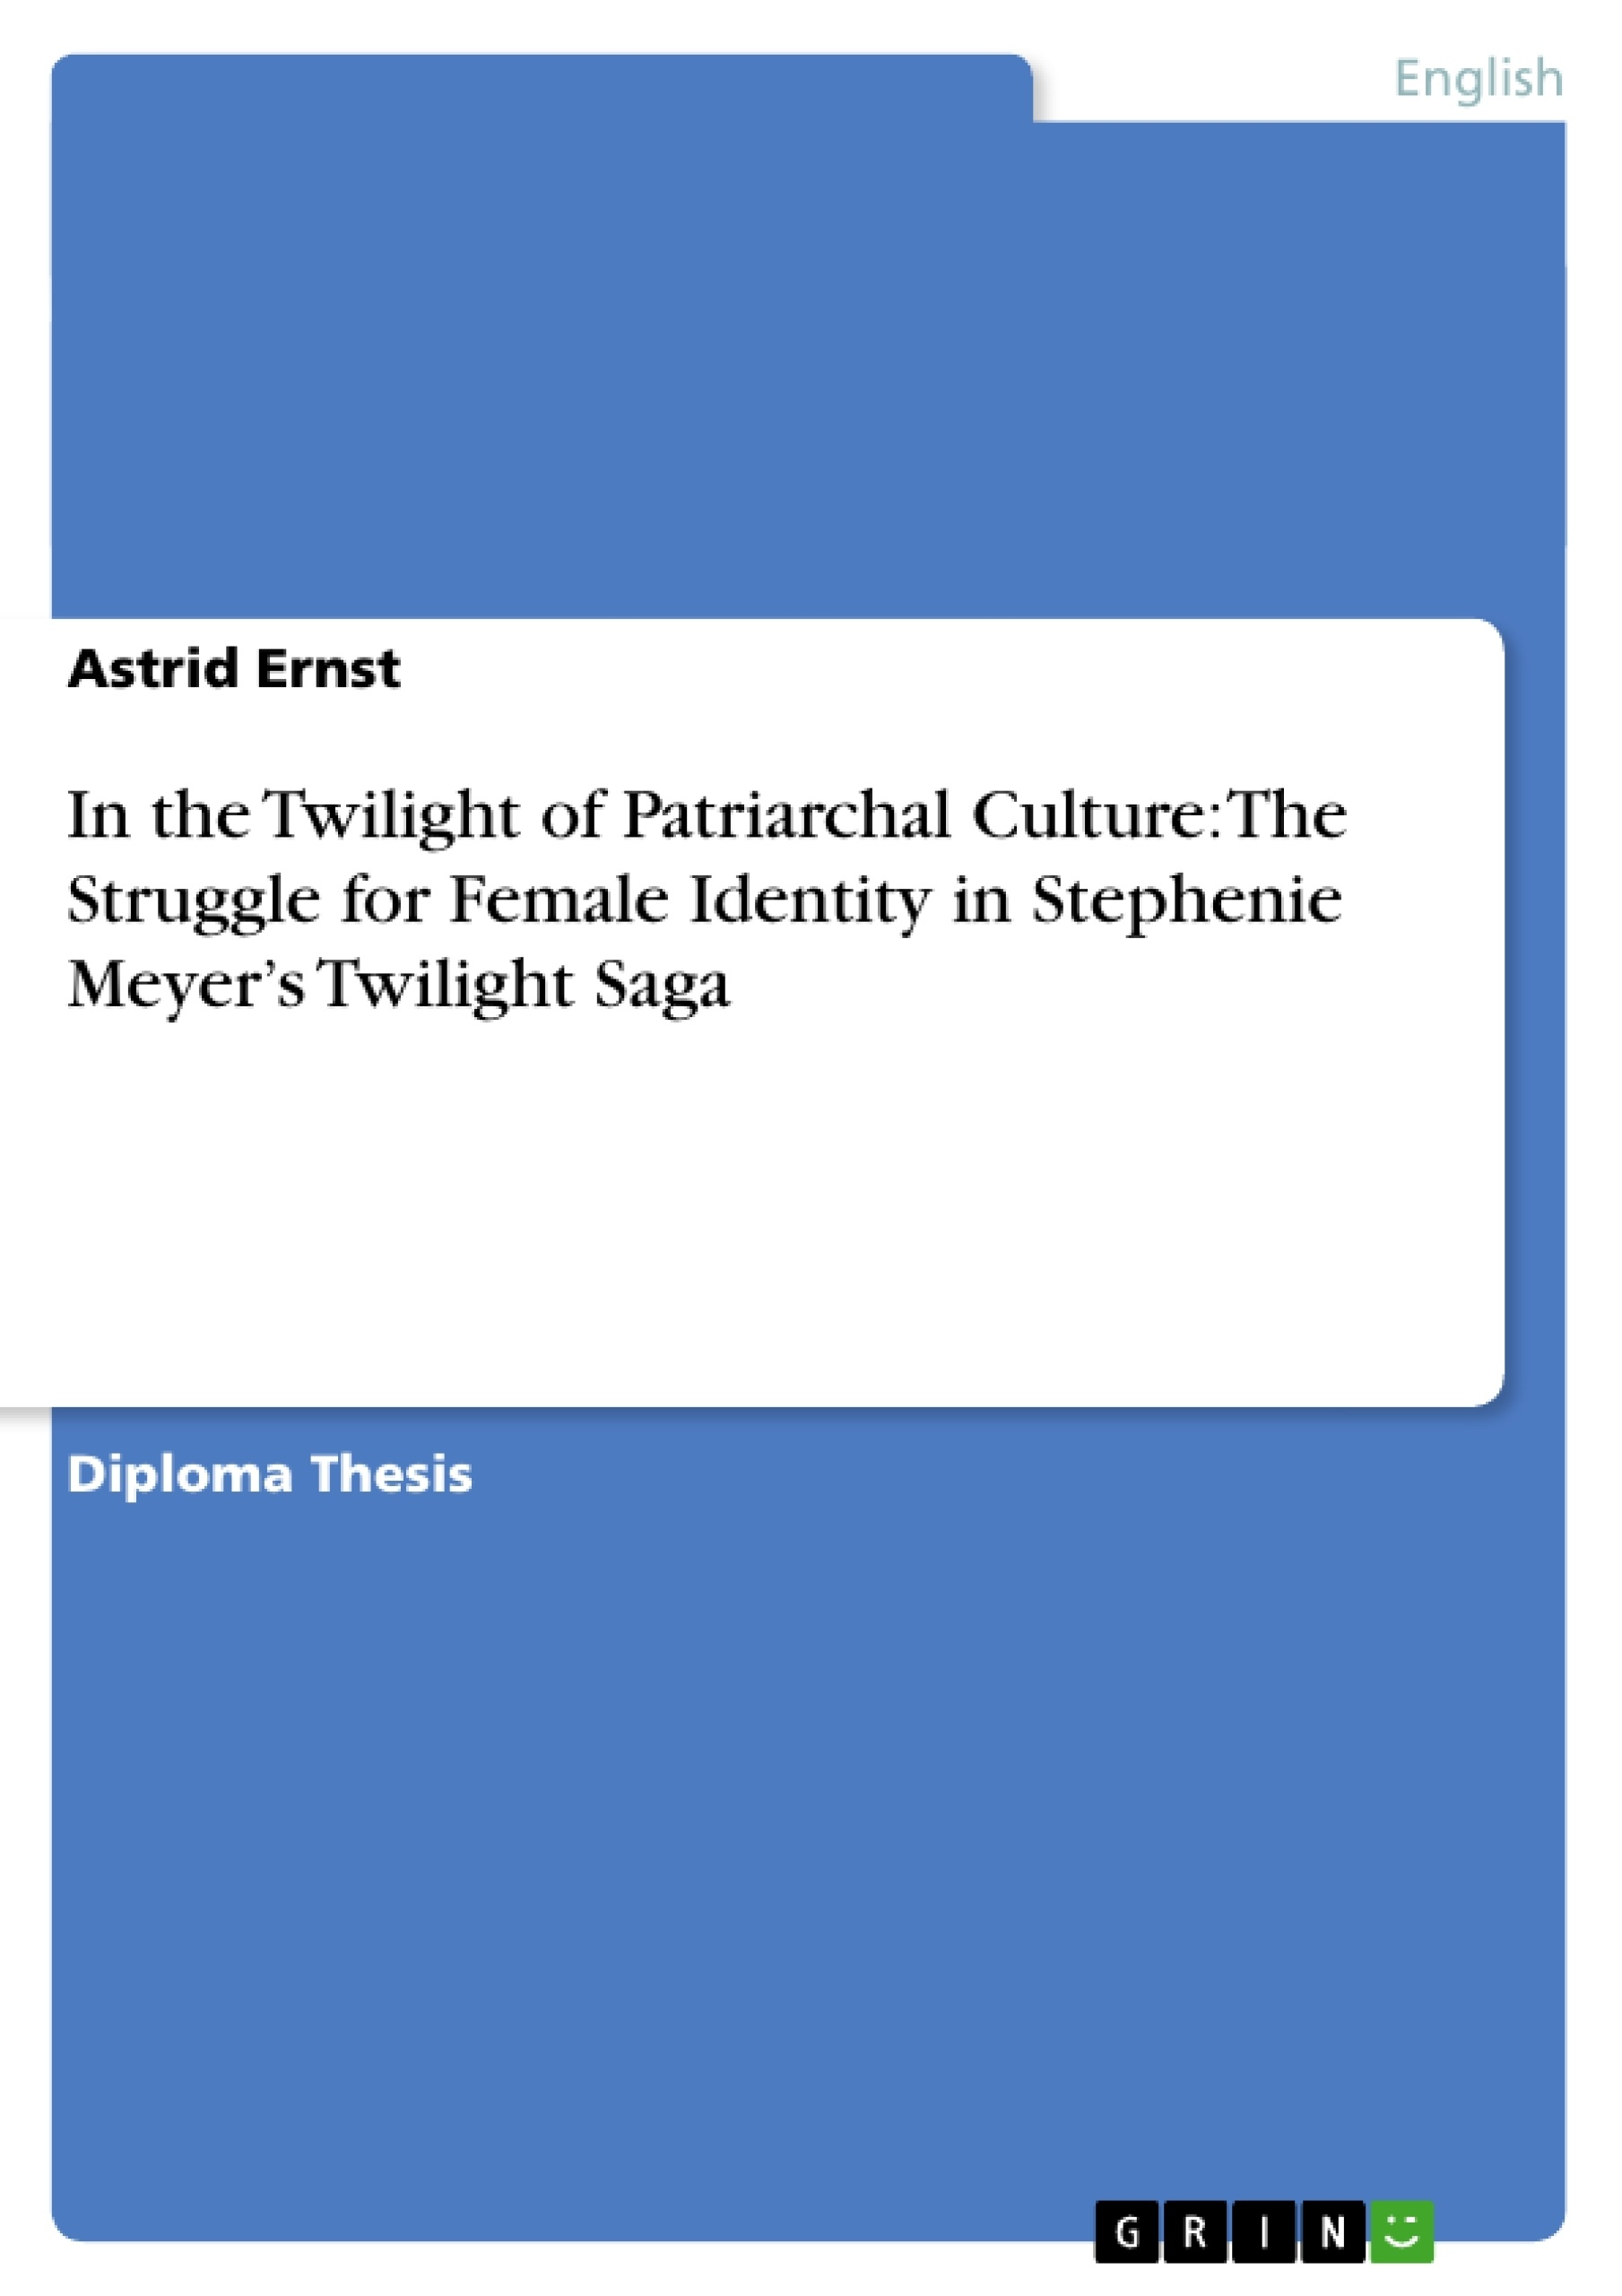 Title: In the Twilight of Patriarchal Culture: The Struggle for Female Identity in Stephenie Meyer's Twilight Saga